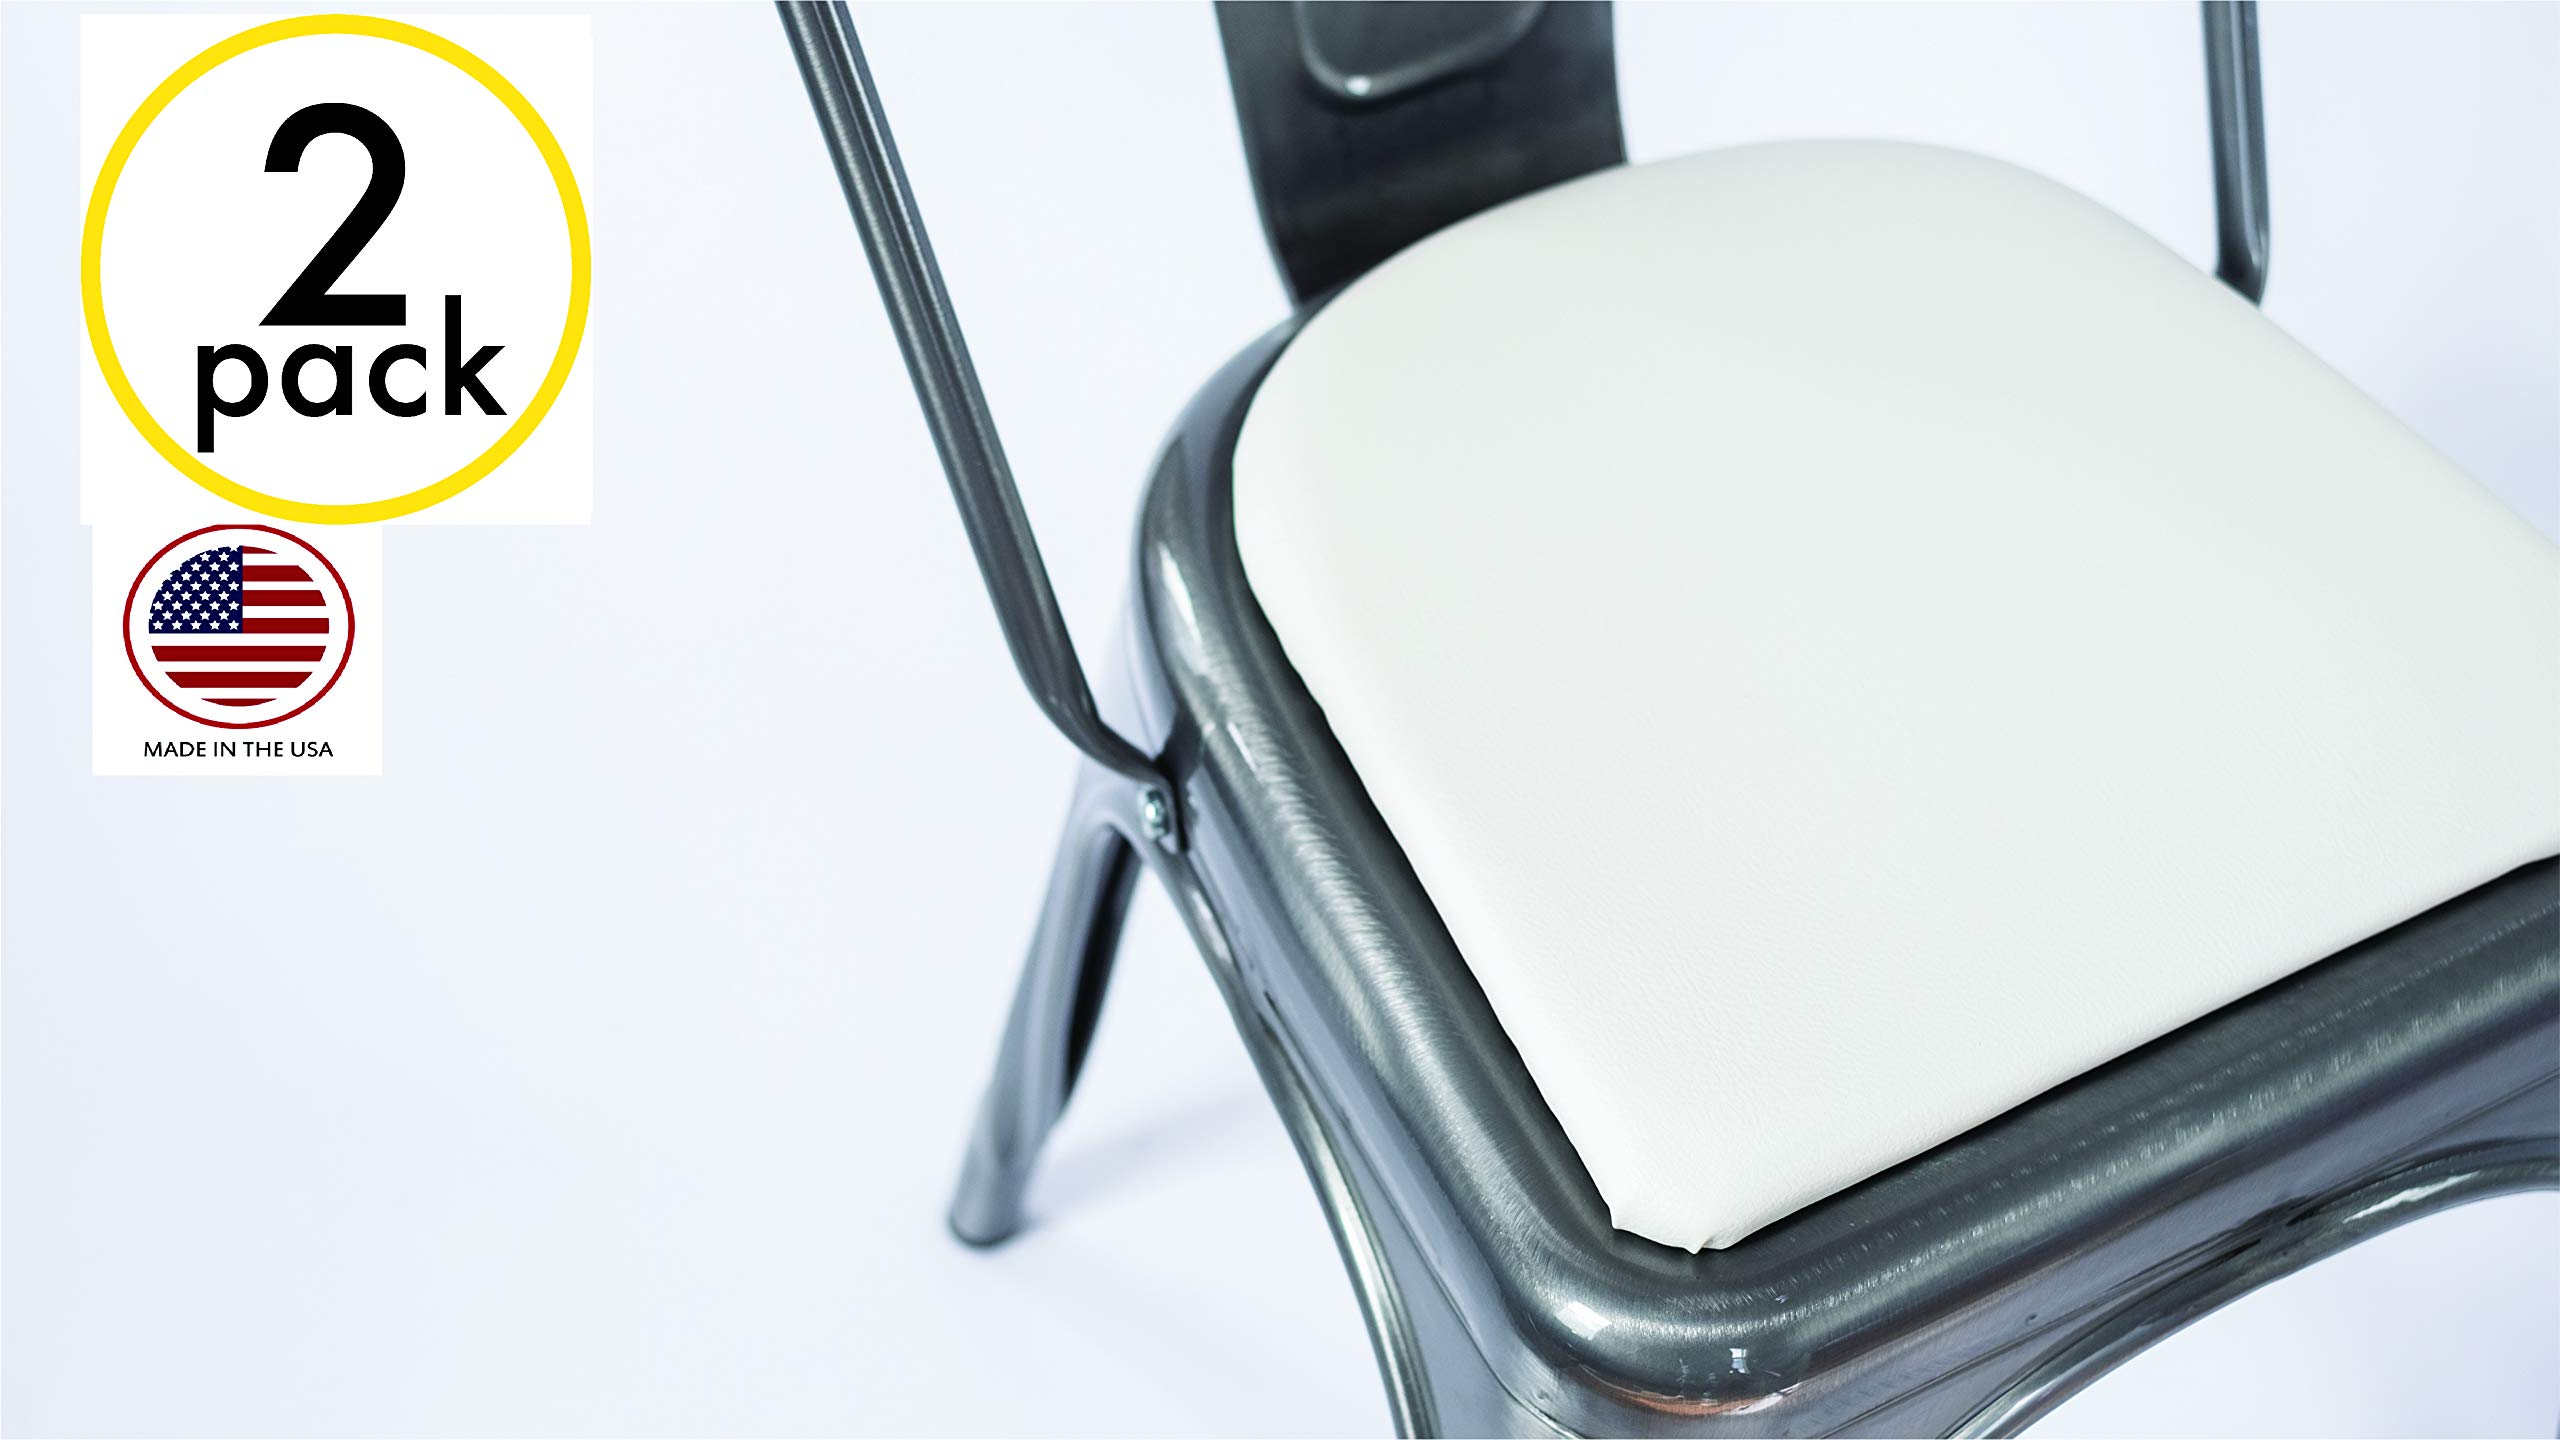 2 Pack Round Chair and Stool Cushions for Metal Stools & Chairs (White) Handmade (in USA)! by Cush Cushion